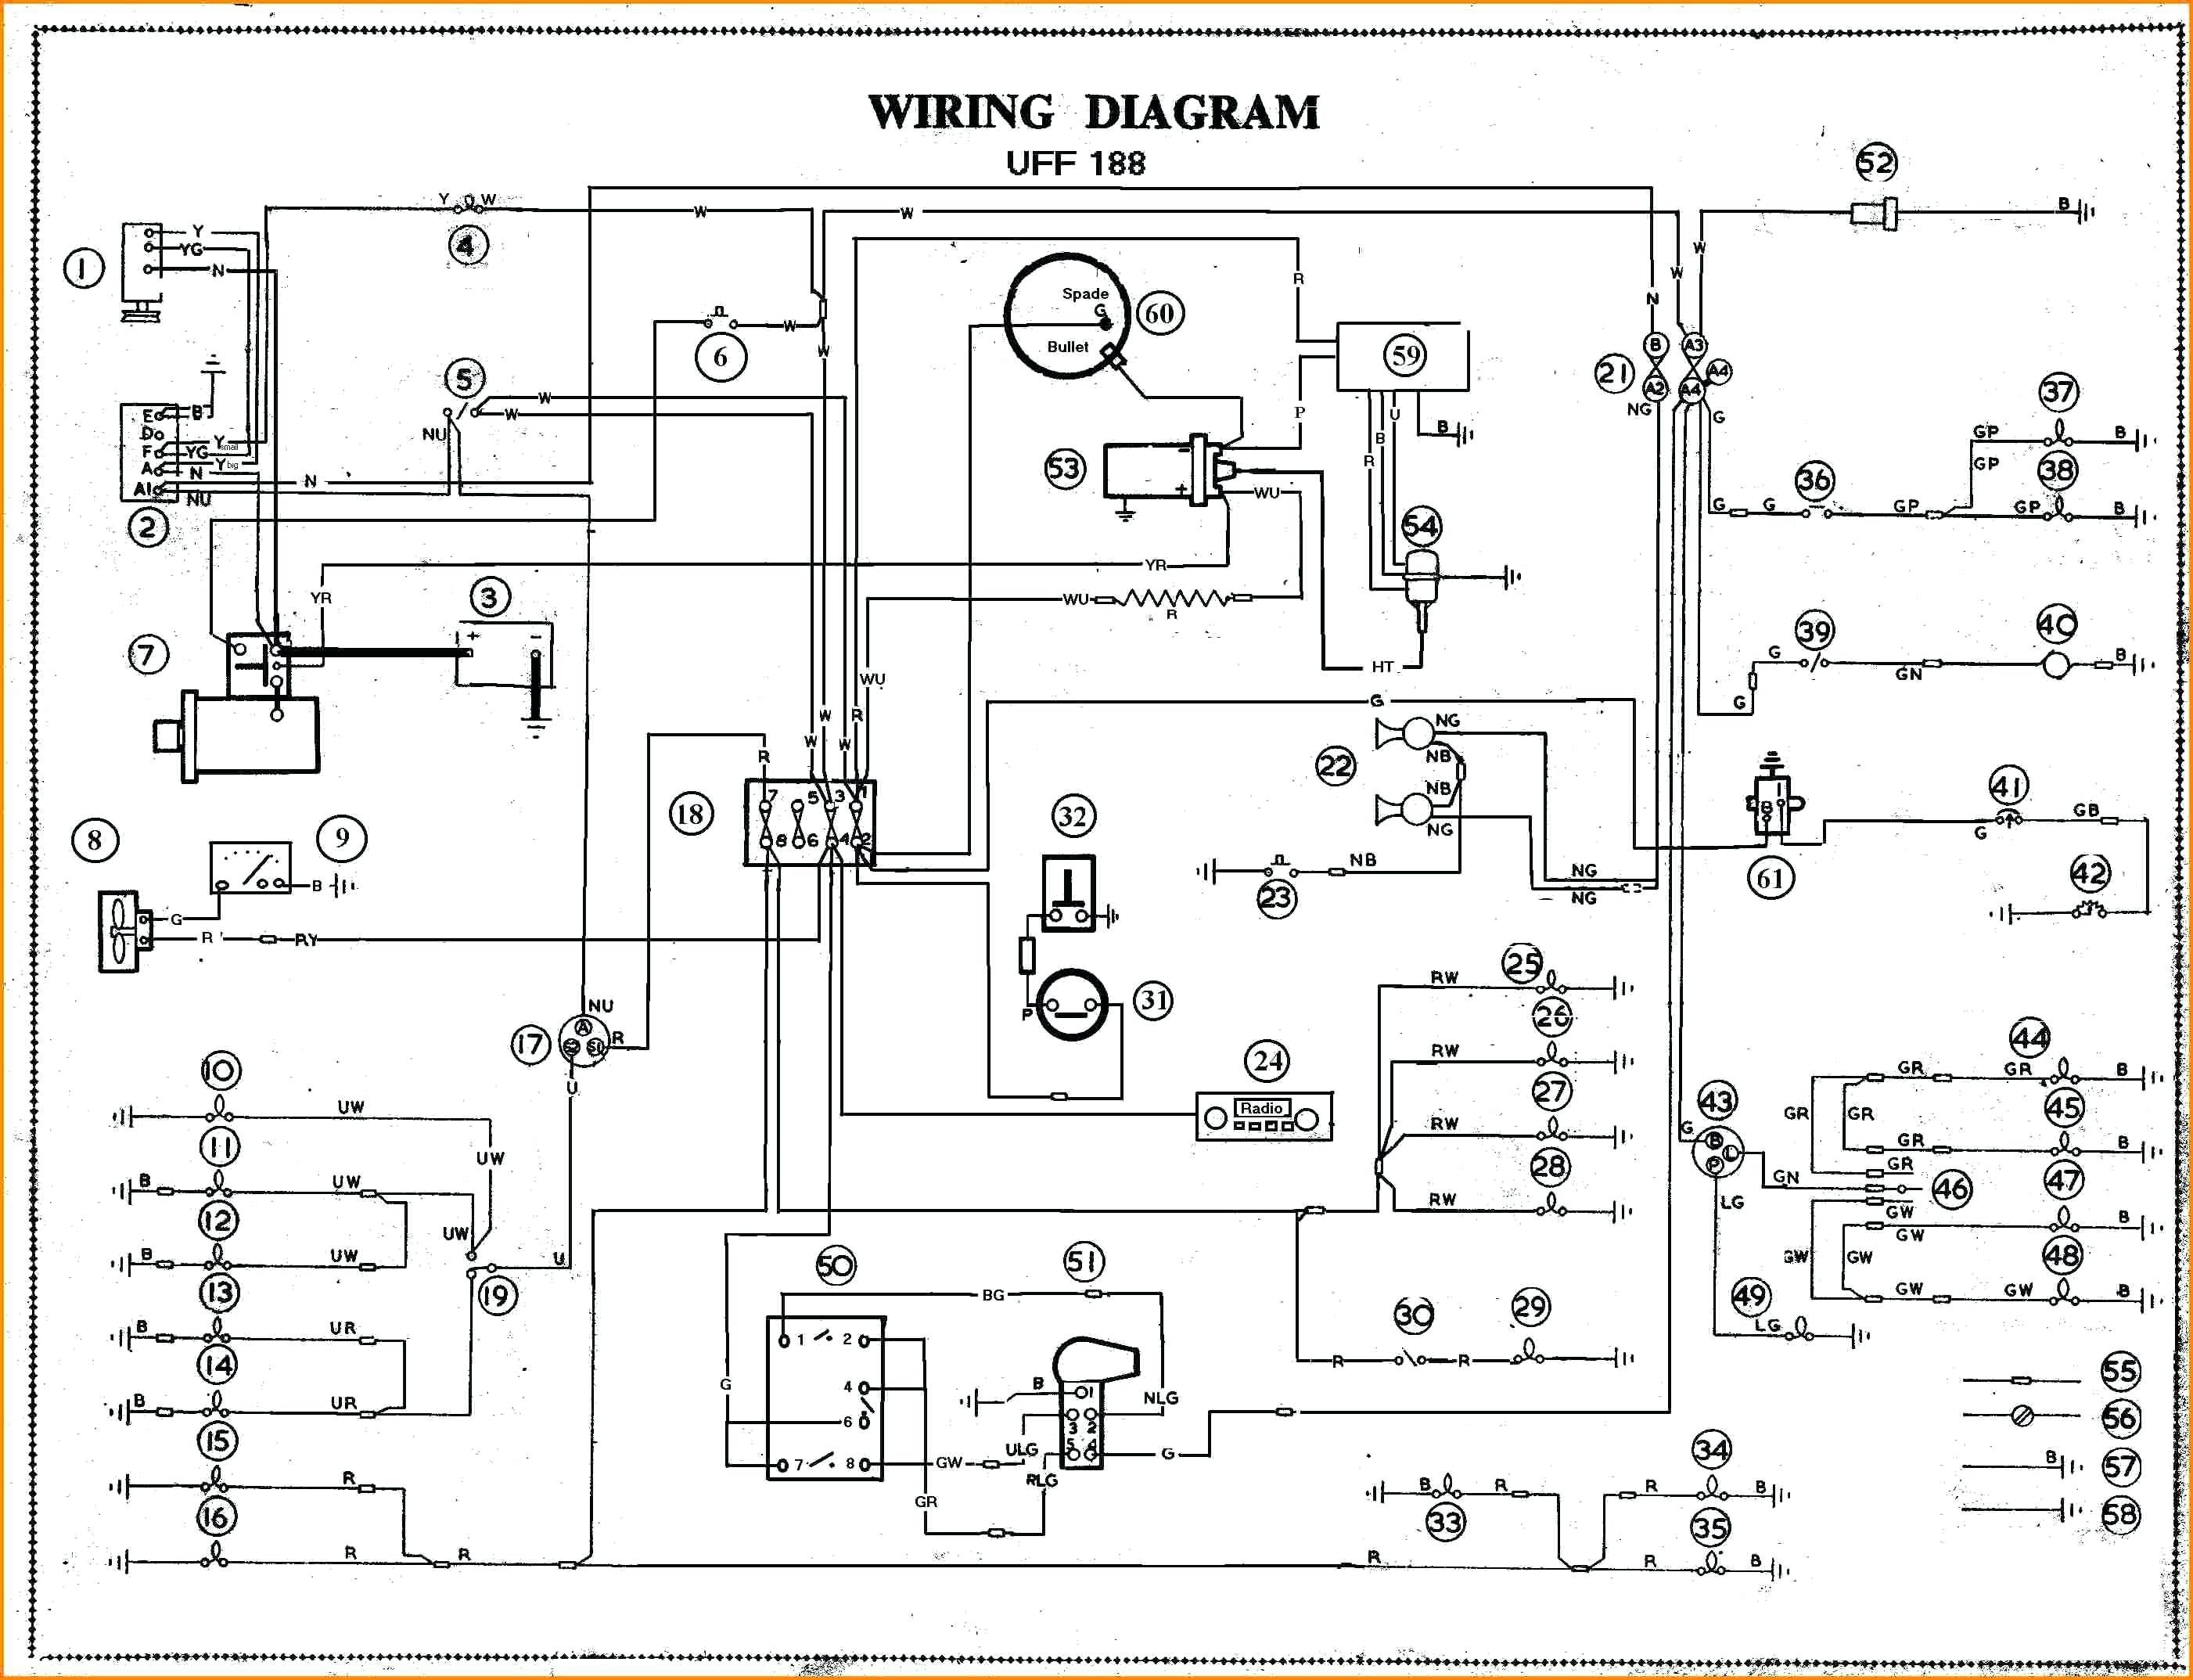 742 bobcat fuse box location trusted wiring diagram rh dafpods co bobcat 753 fuse box diagram